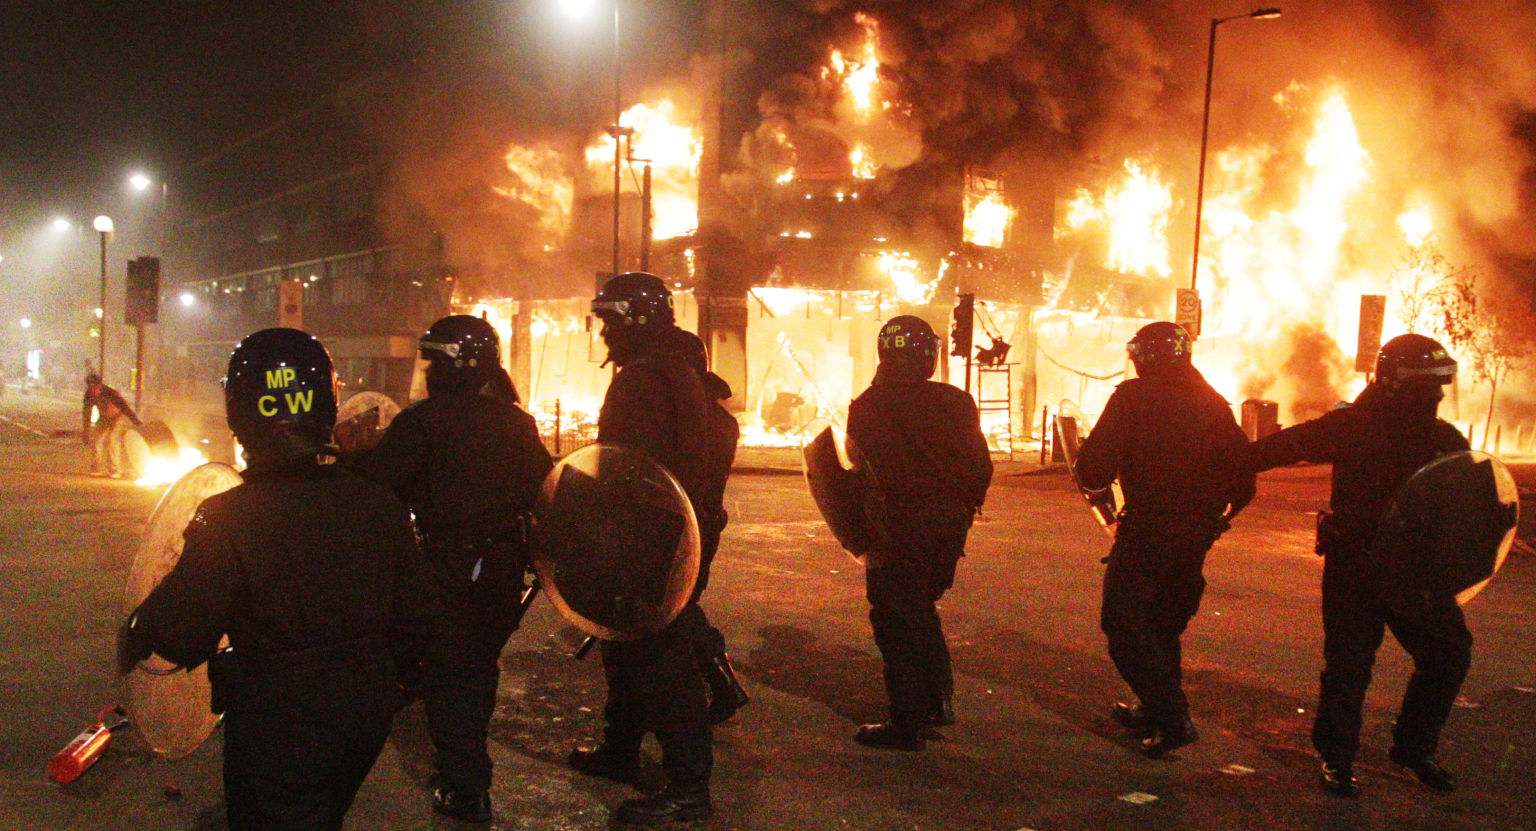 http://i.huffpost.com/gen/1283124/images/o-LONDON-RIOTS-facebook.jpg